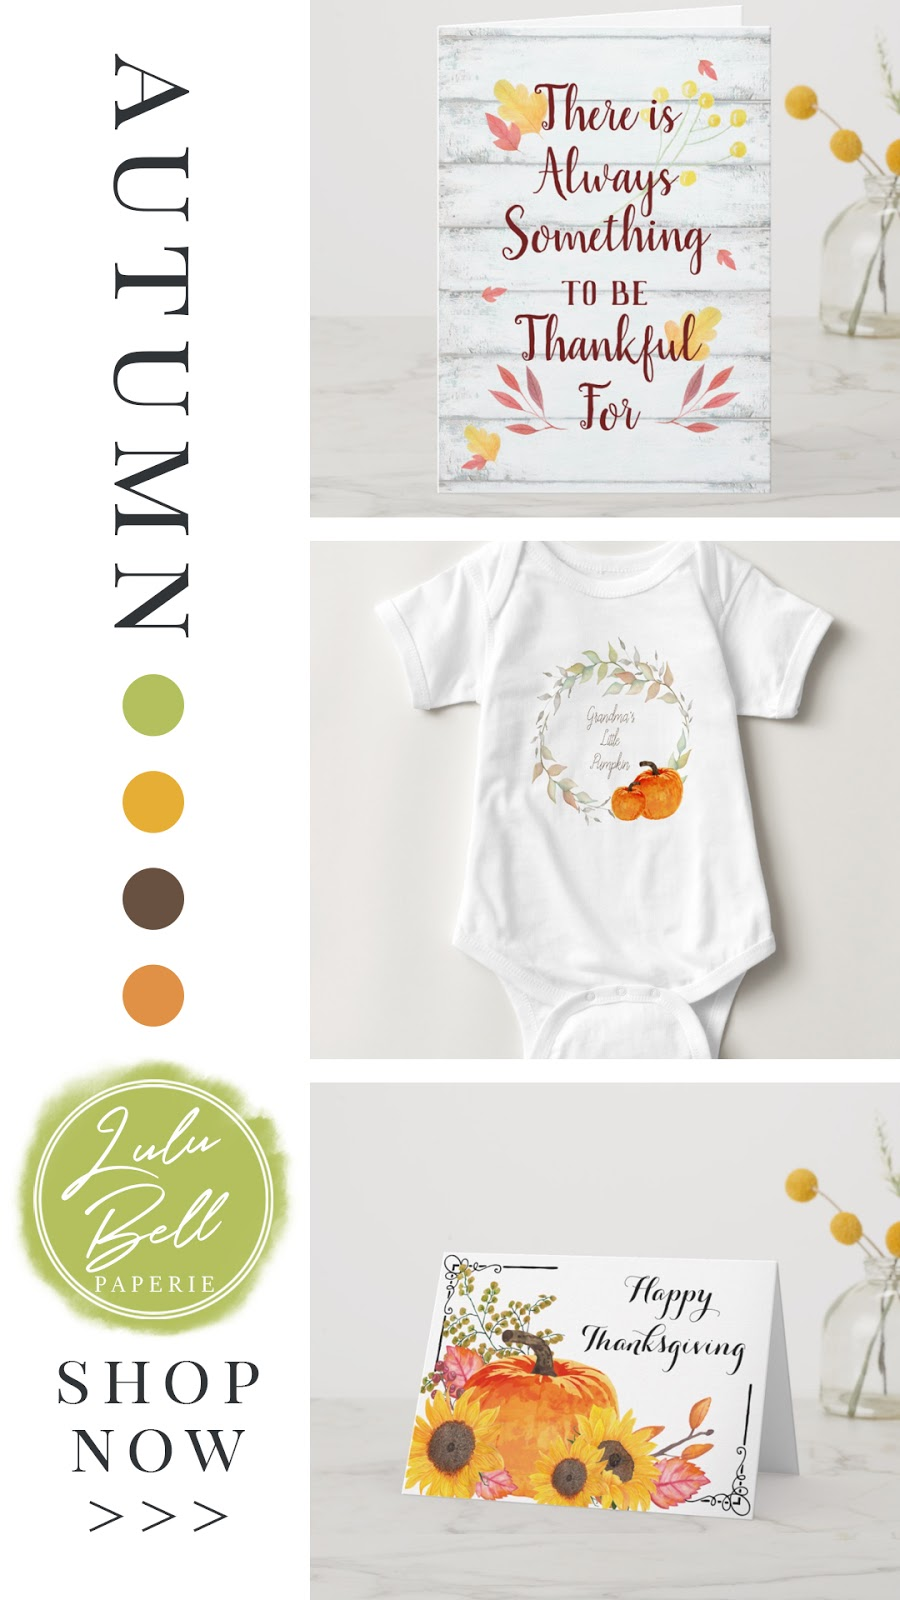 Autumn Farmhouse Home Decor Collection - Thankful Cards, Baby Apparel, and Happy Thanksgiving Cards